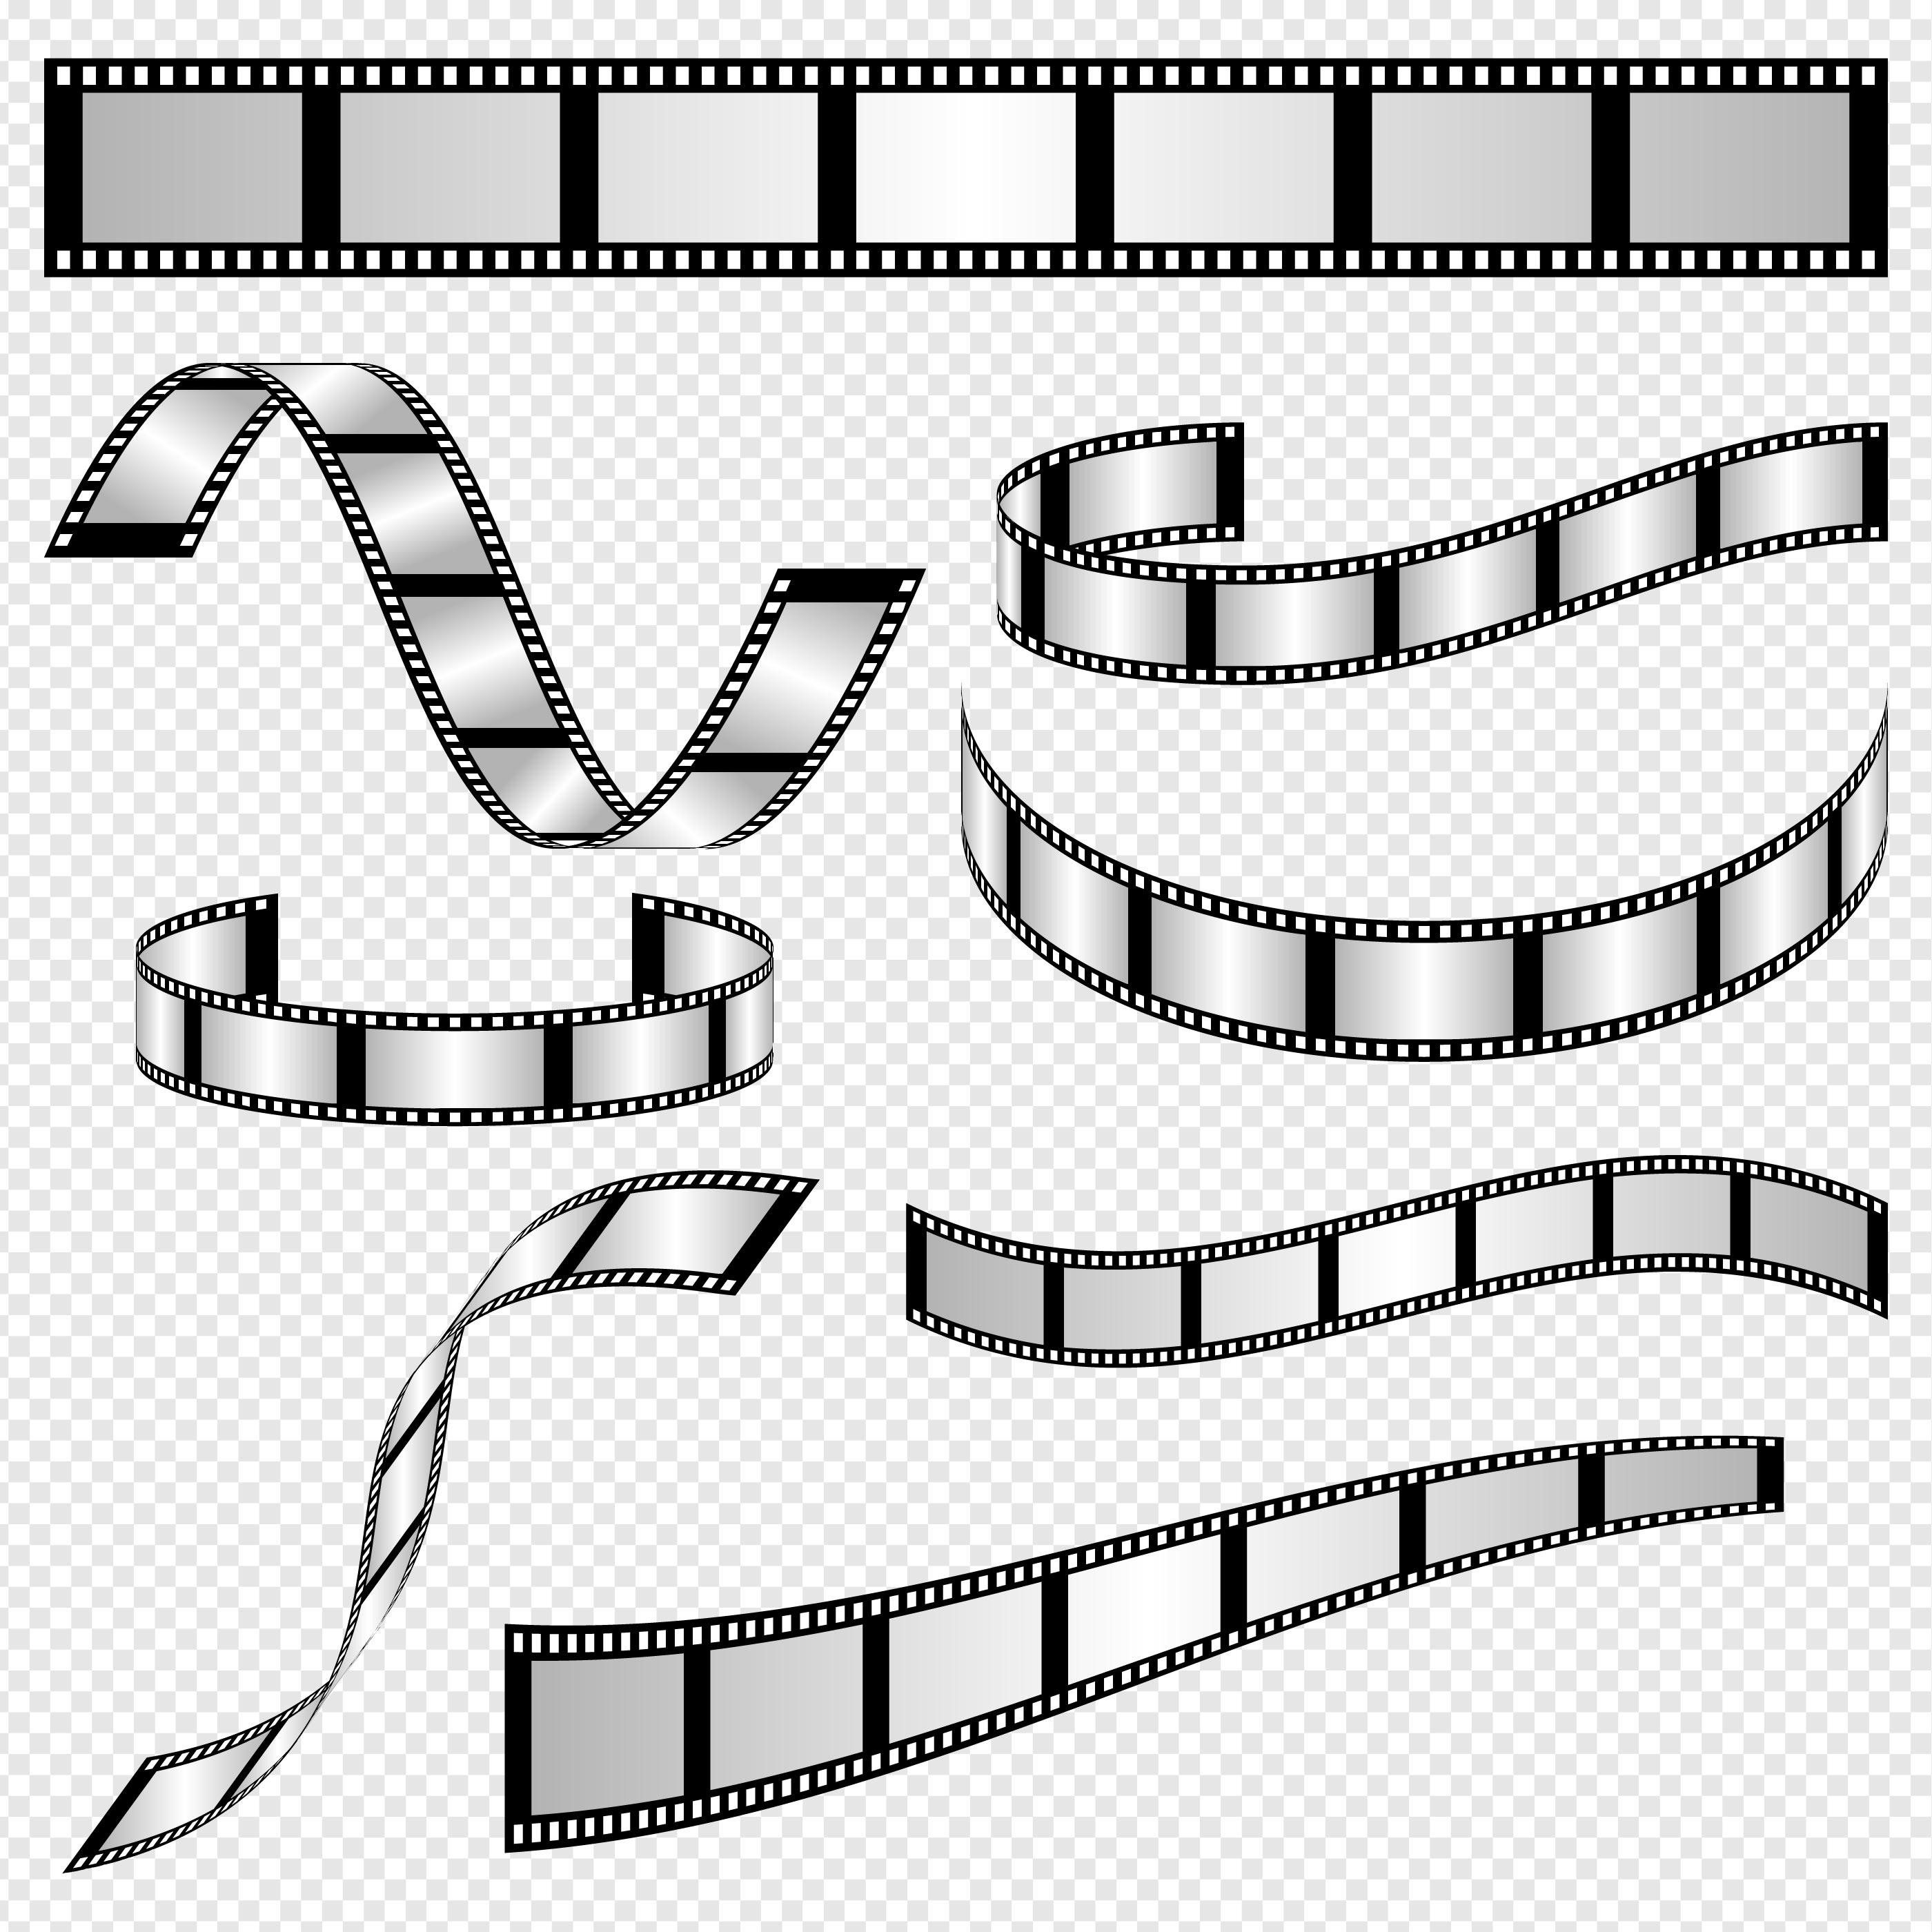 Film strip template vectors download free vector art for Film strip picture template